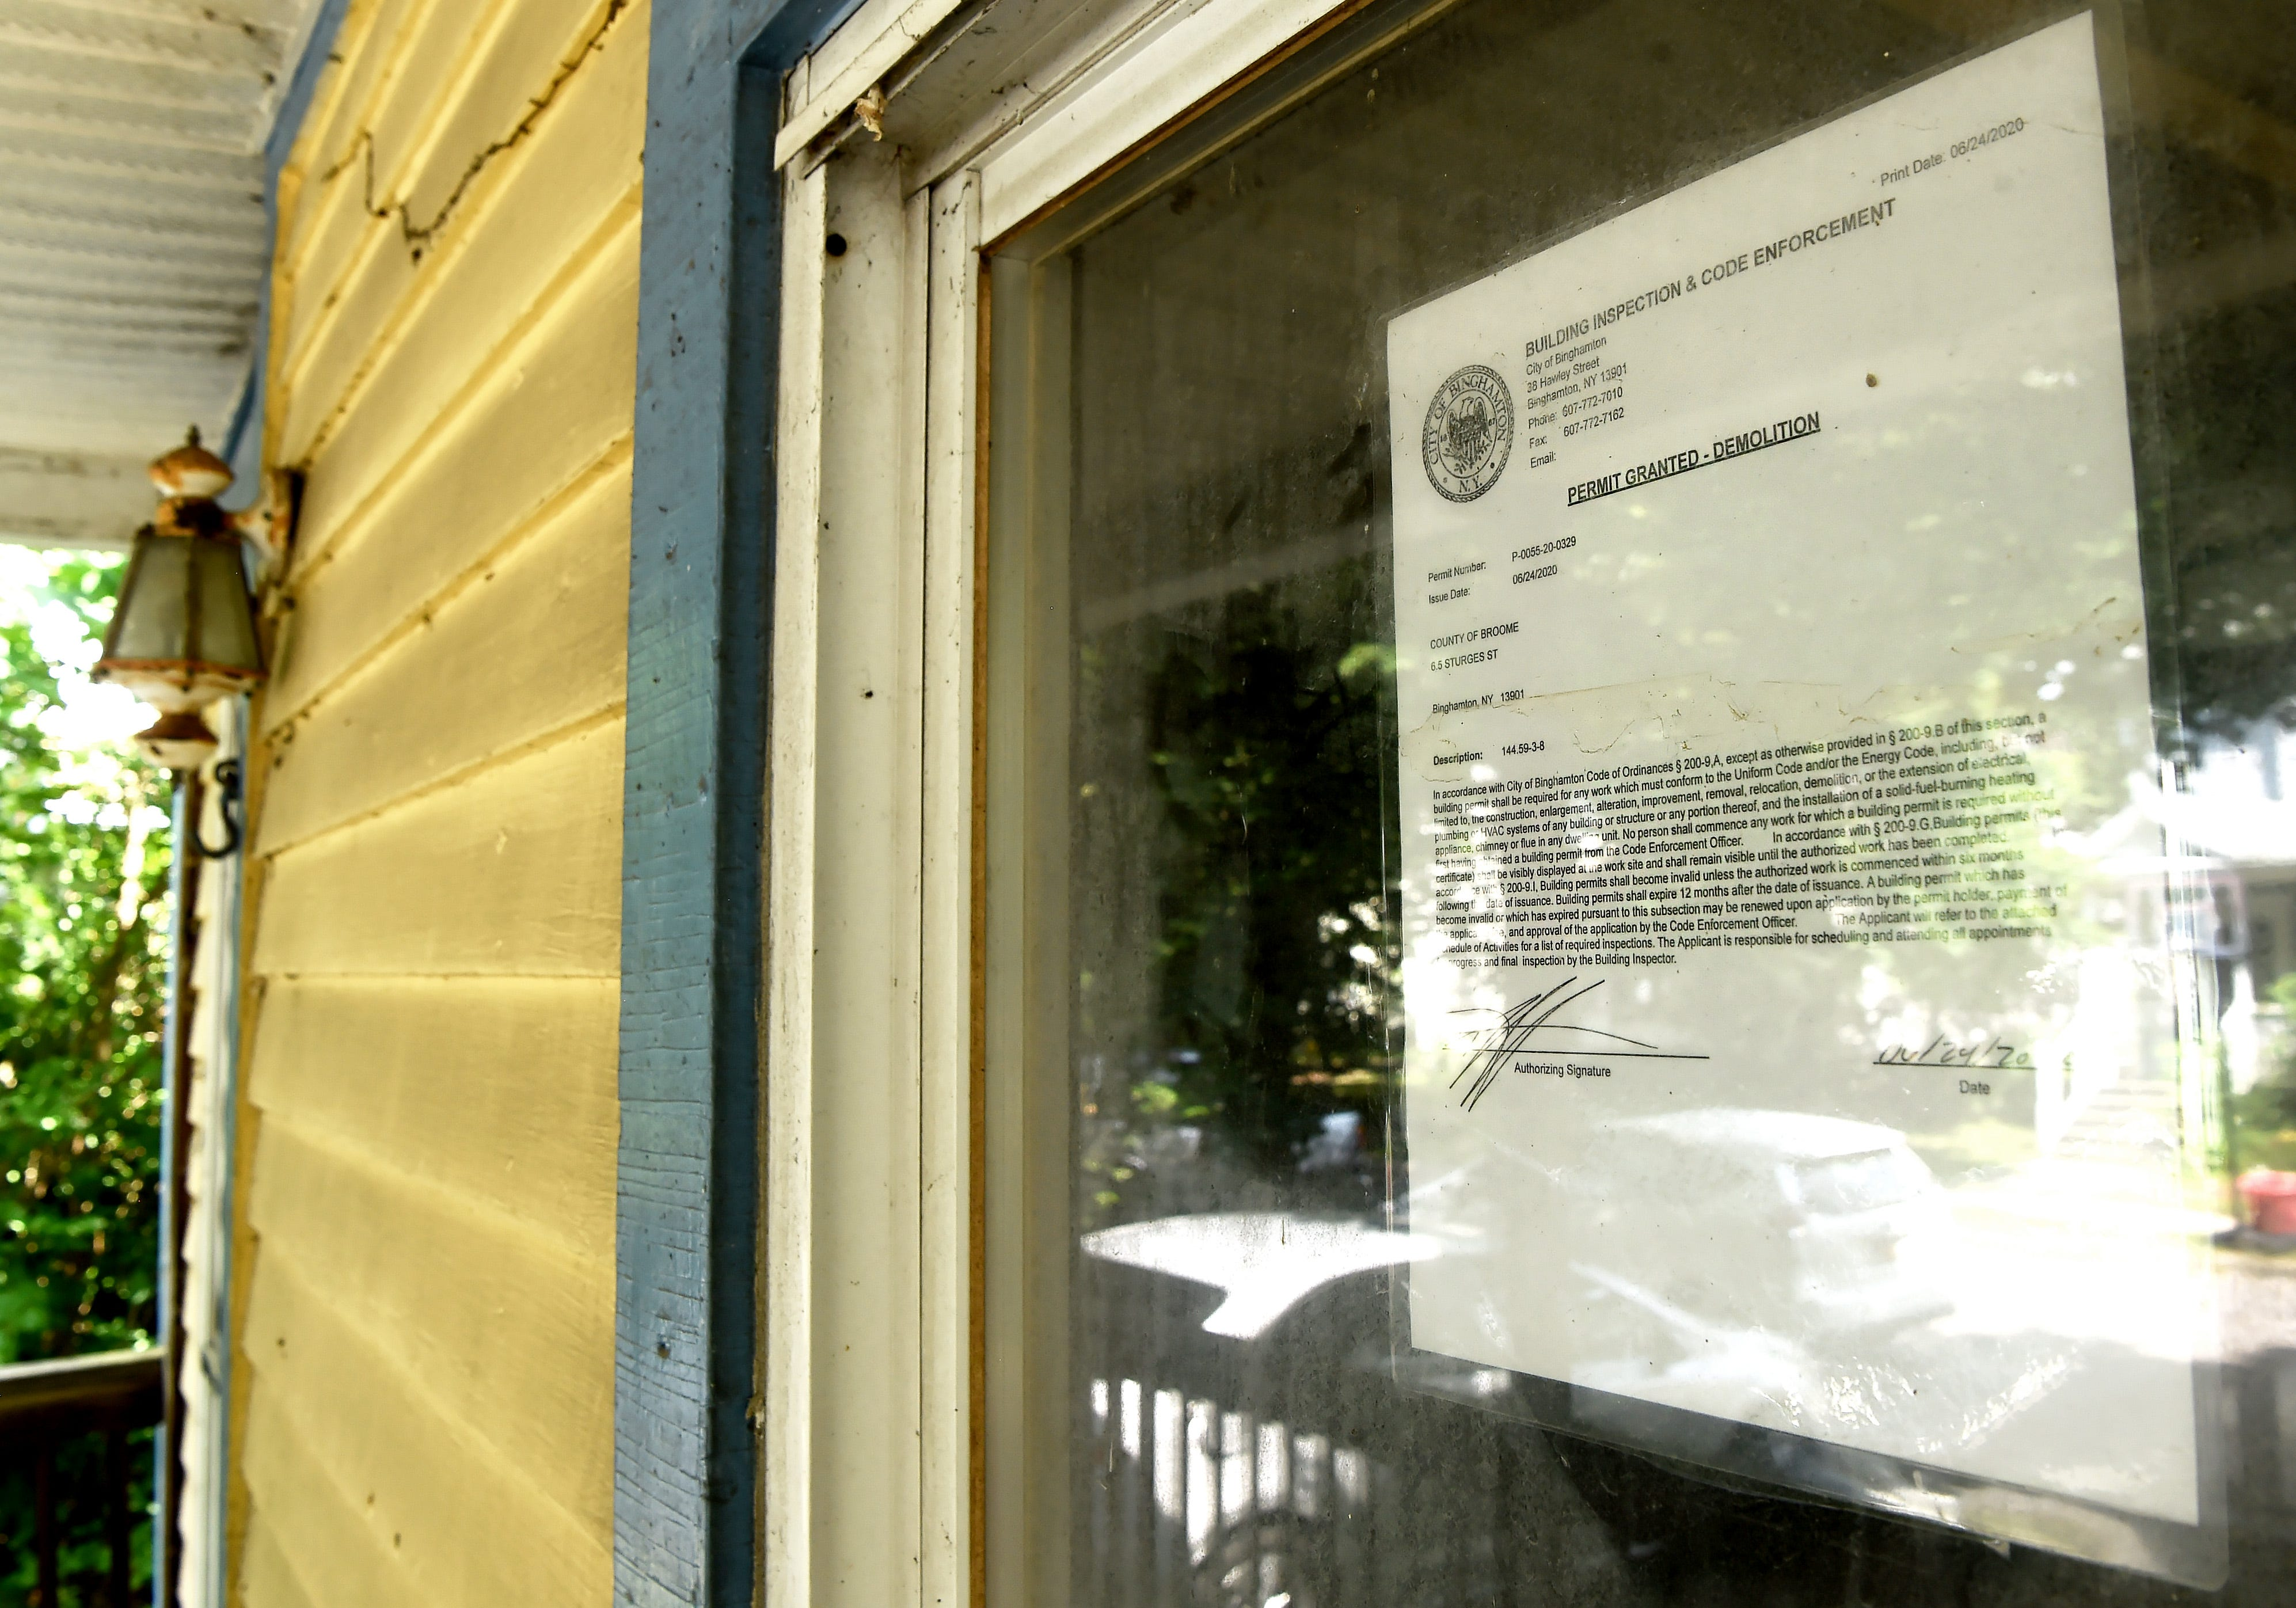 A demolition permit is affixed in a window at at 6 1/2 Sturges St. in Binghamton on July 2, 2020.